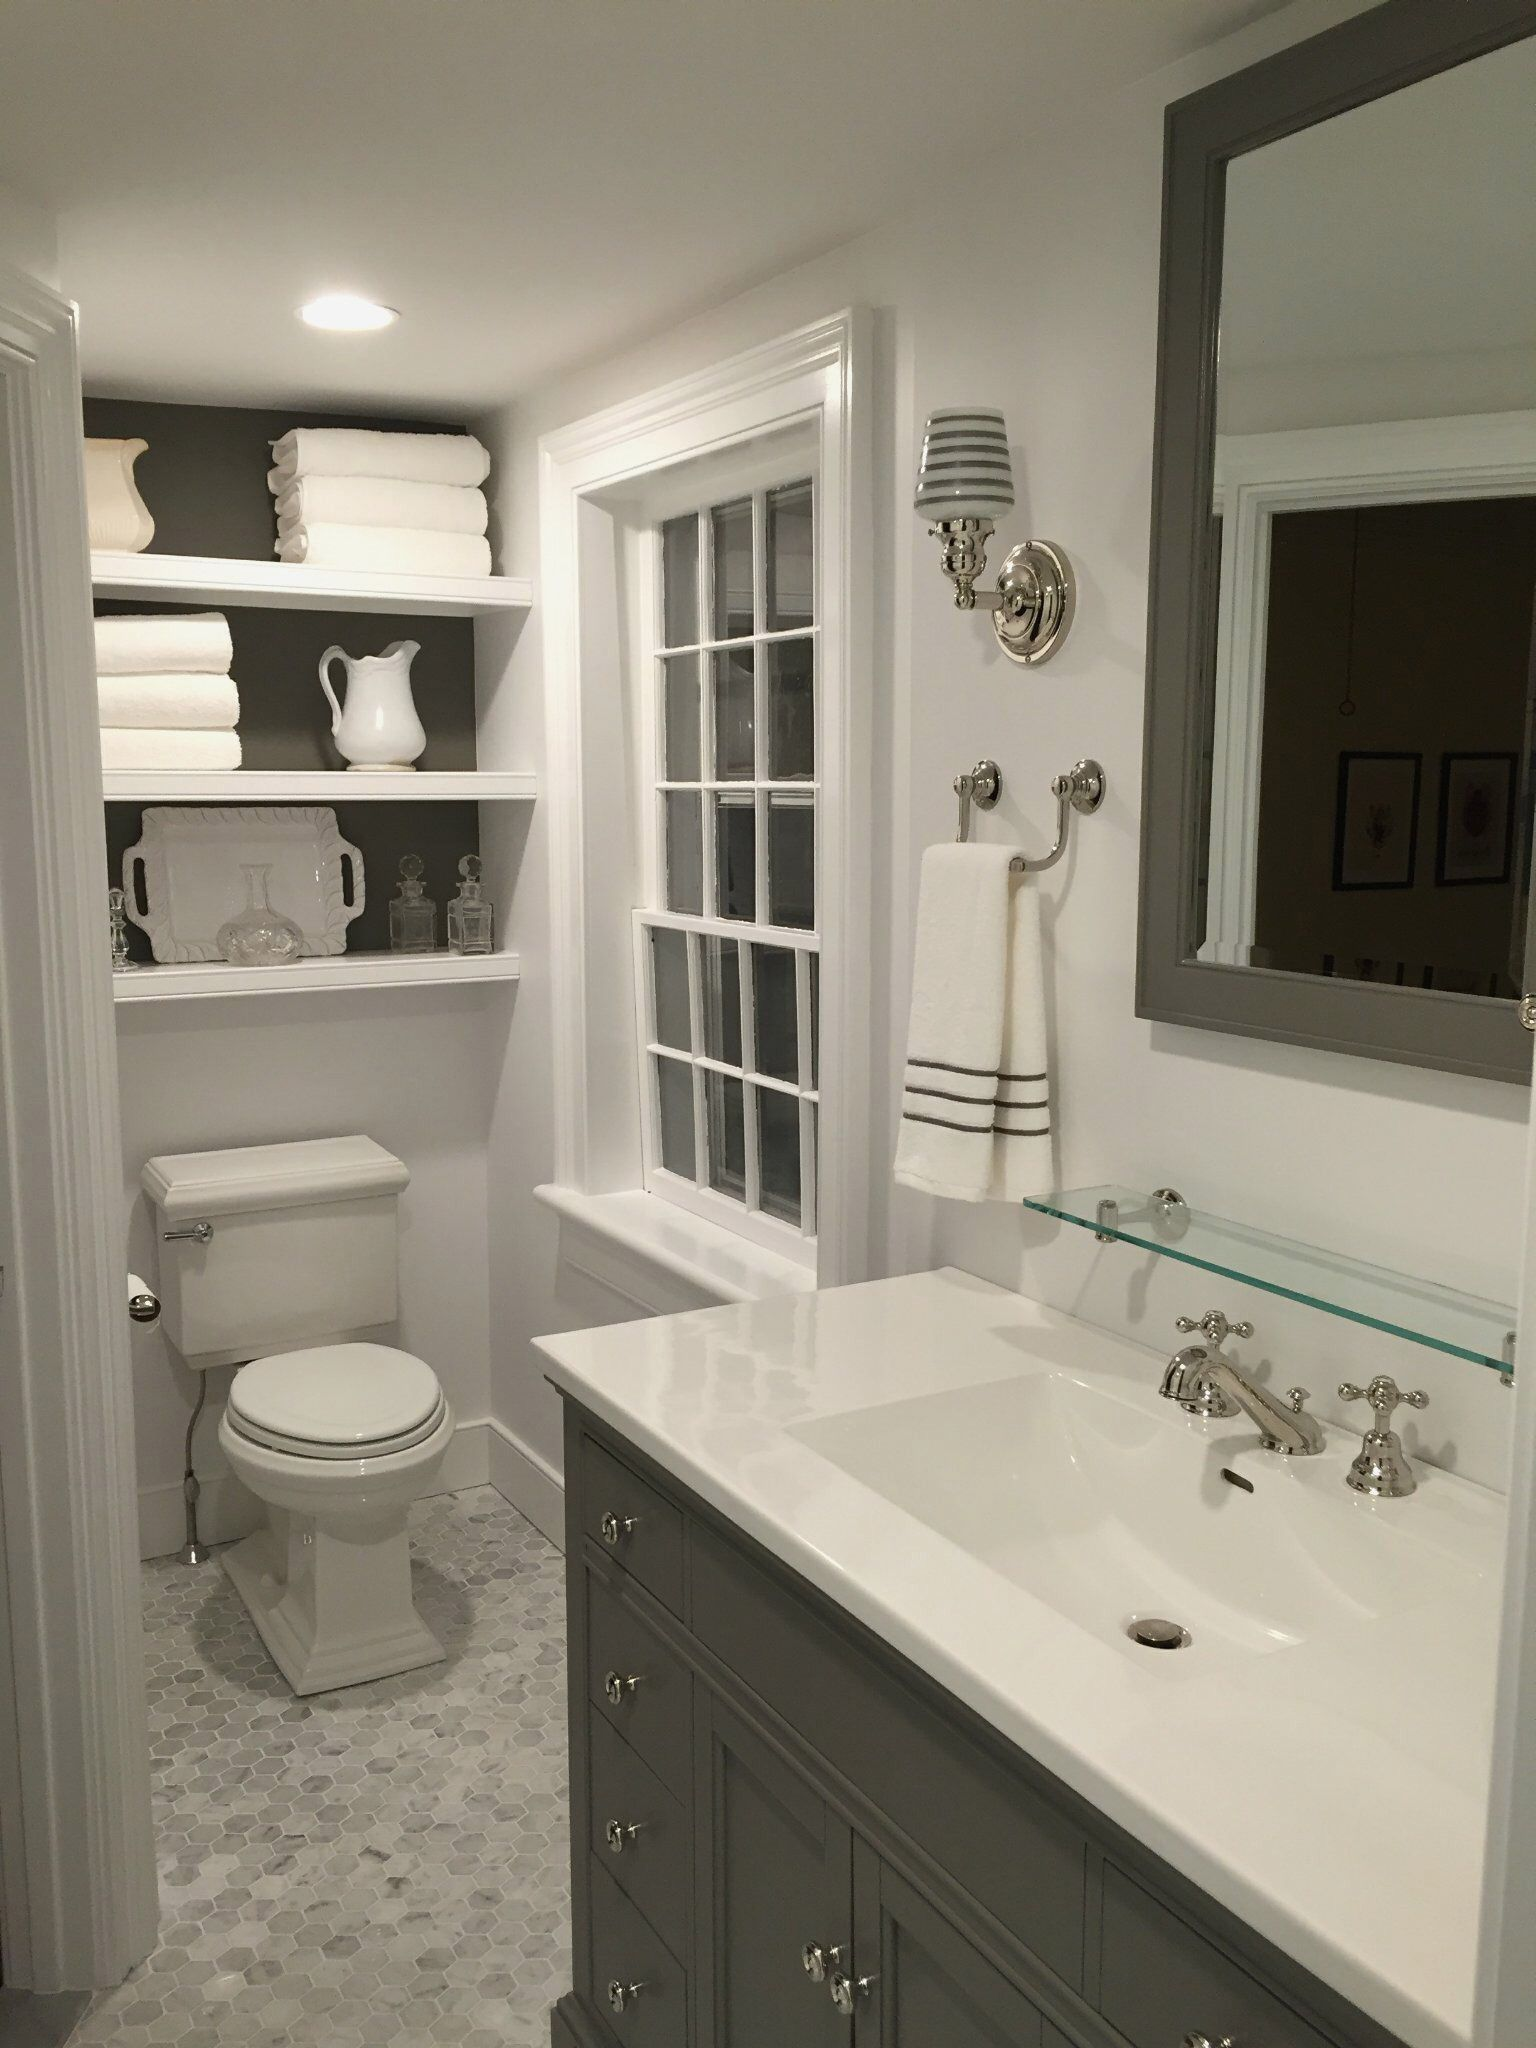 37 Modern Bathroom Vanity Ideas for Your Next Remodel In ...